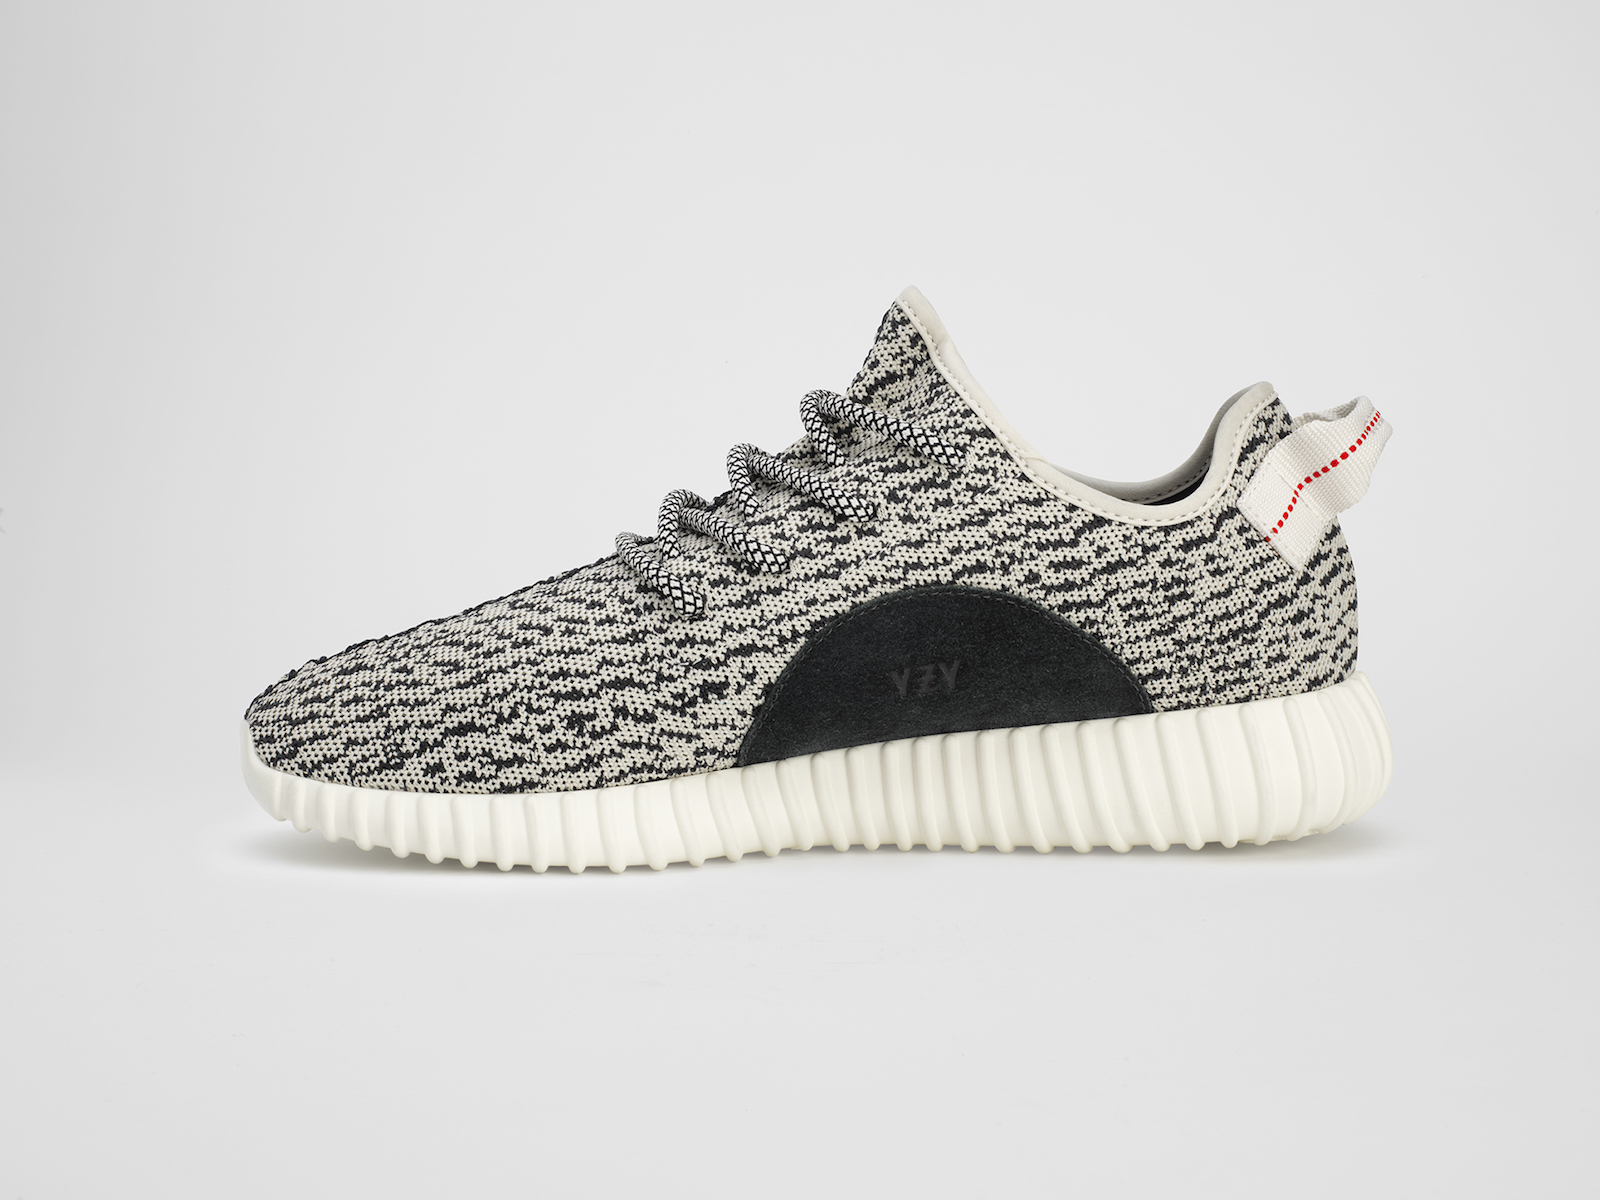 adidas-yeezy-boost-350-no-braisl-1